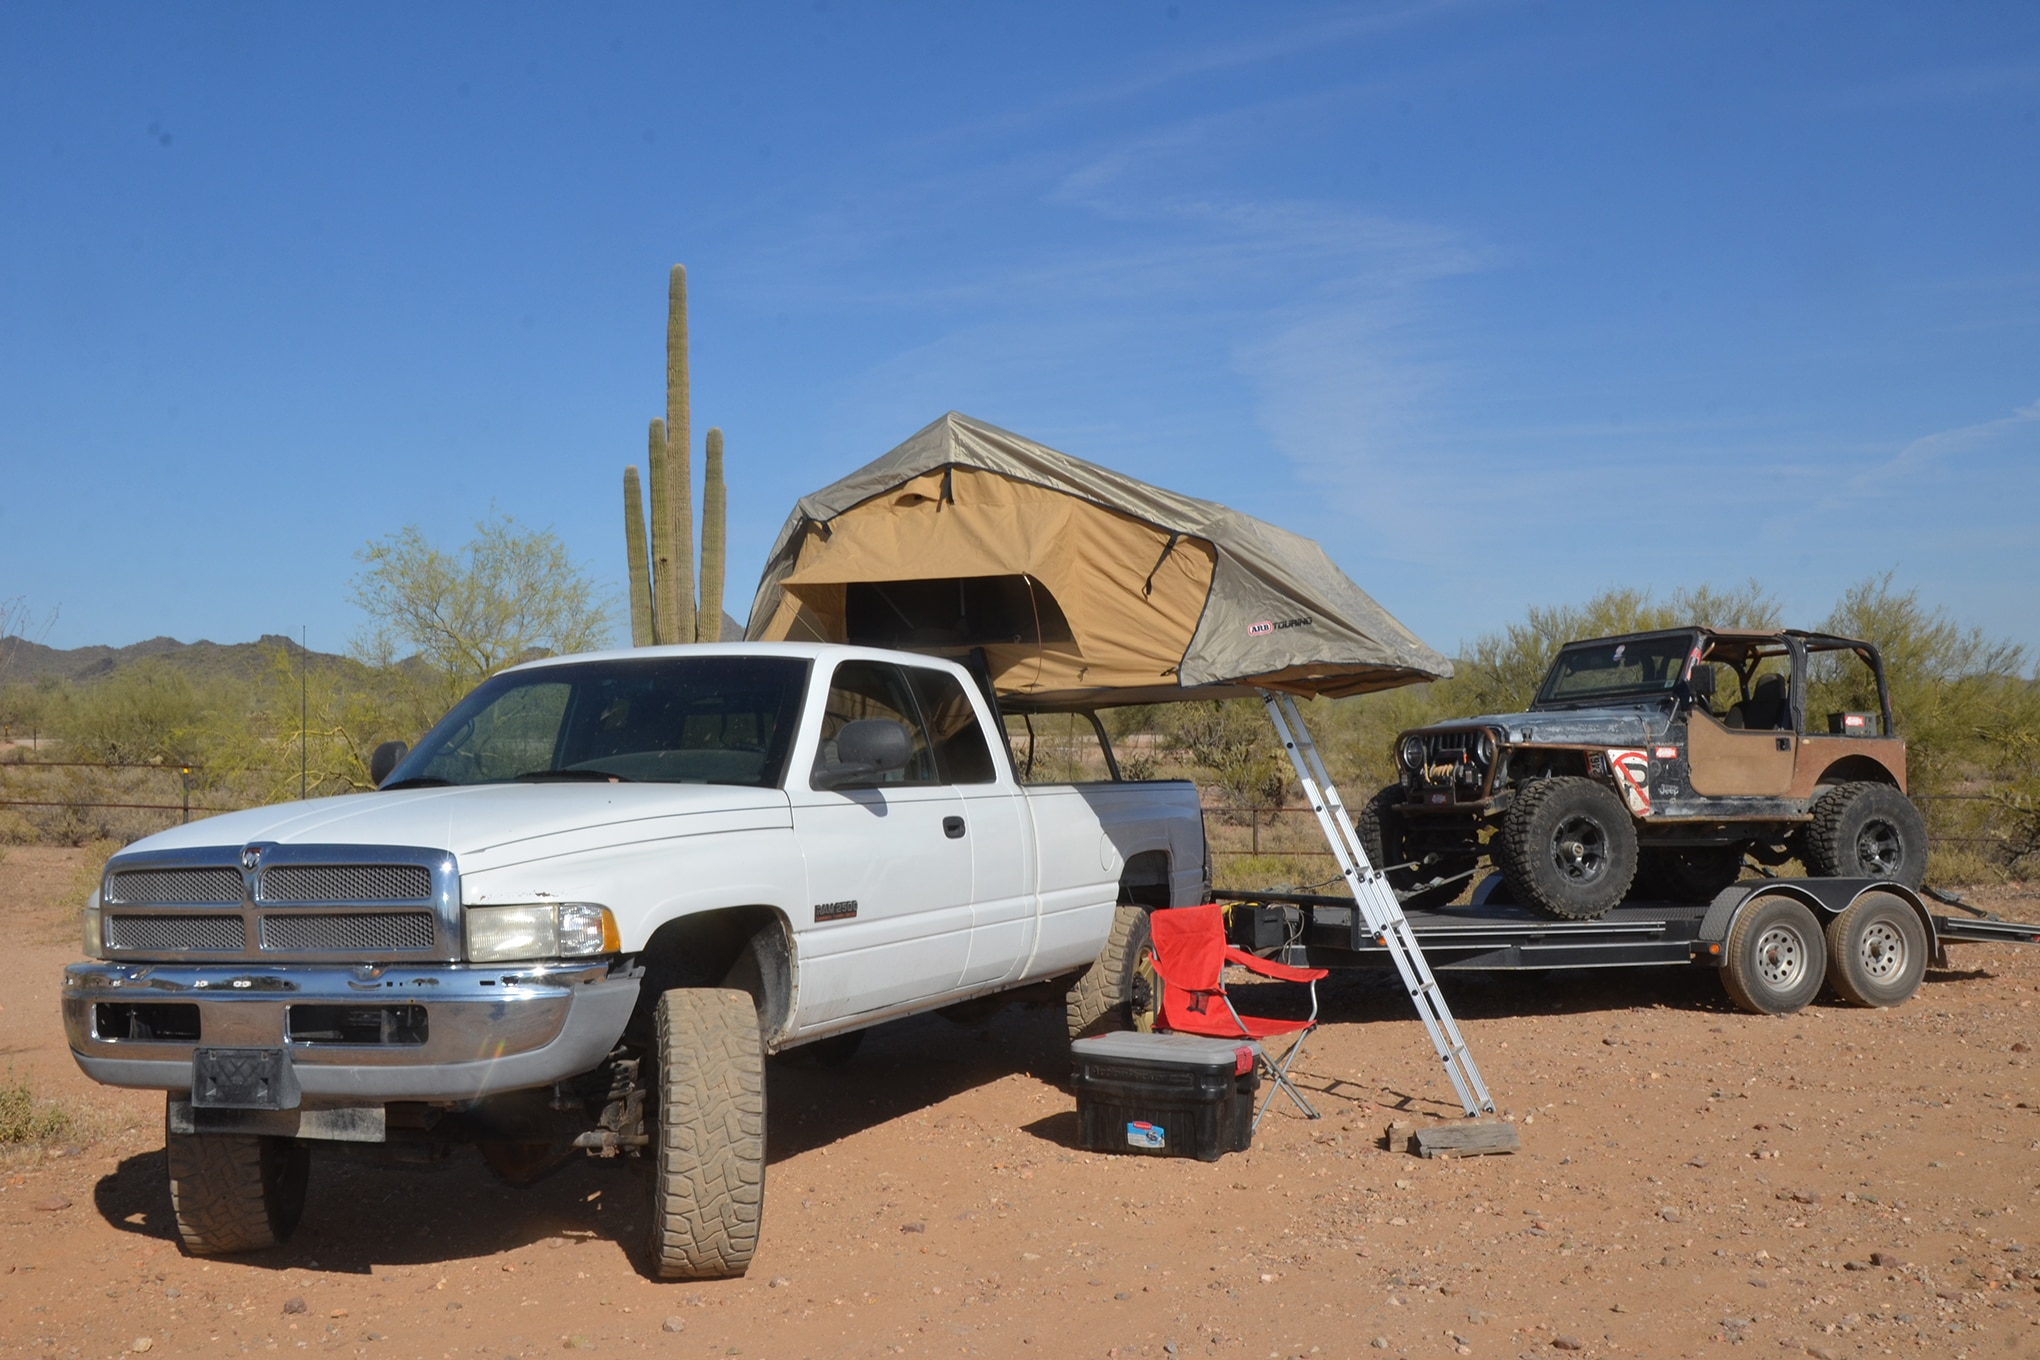 Big Three on a Budget: What's the Best Pre-Owned 3/4-Ton 4x4